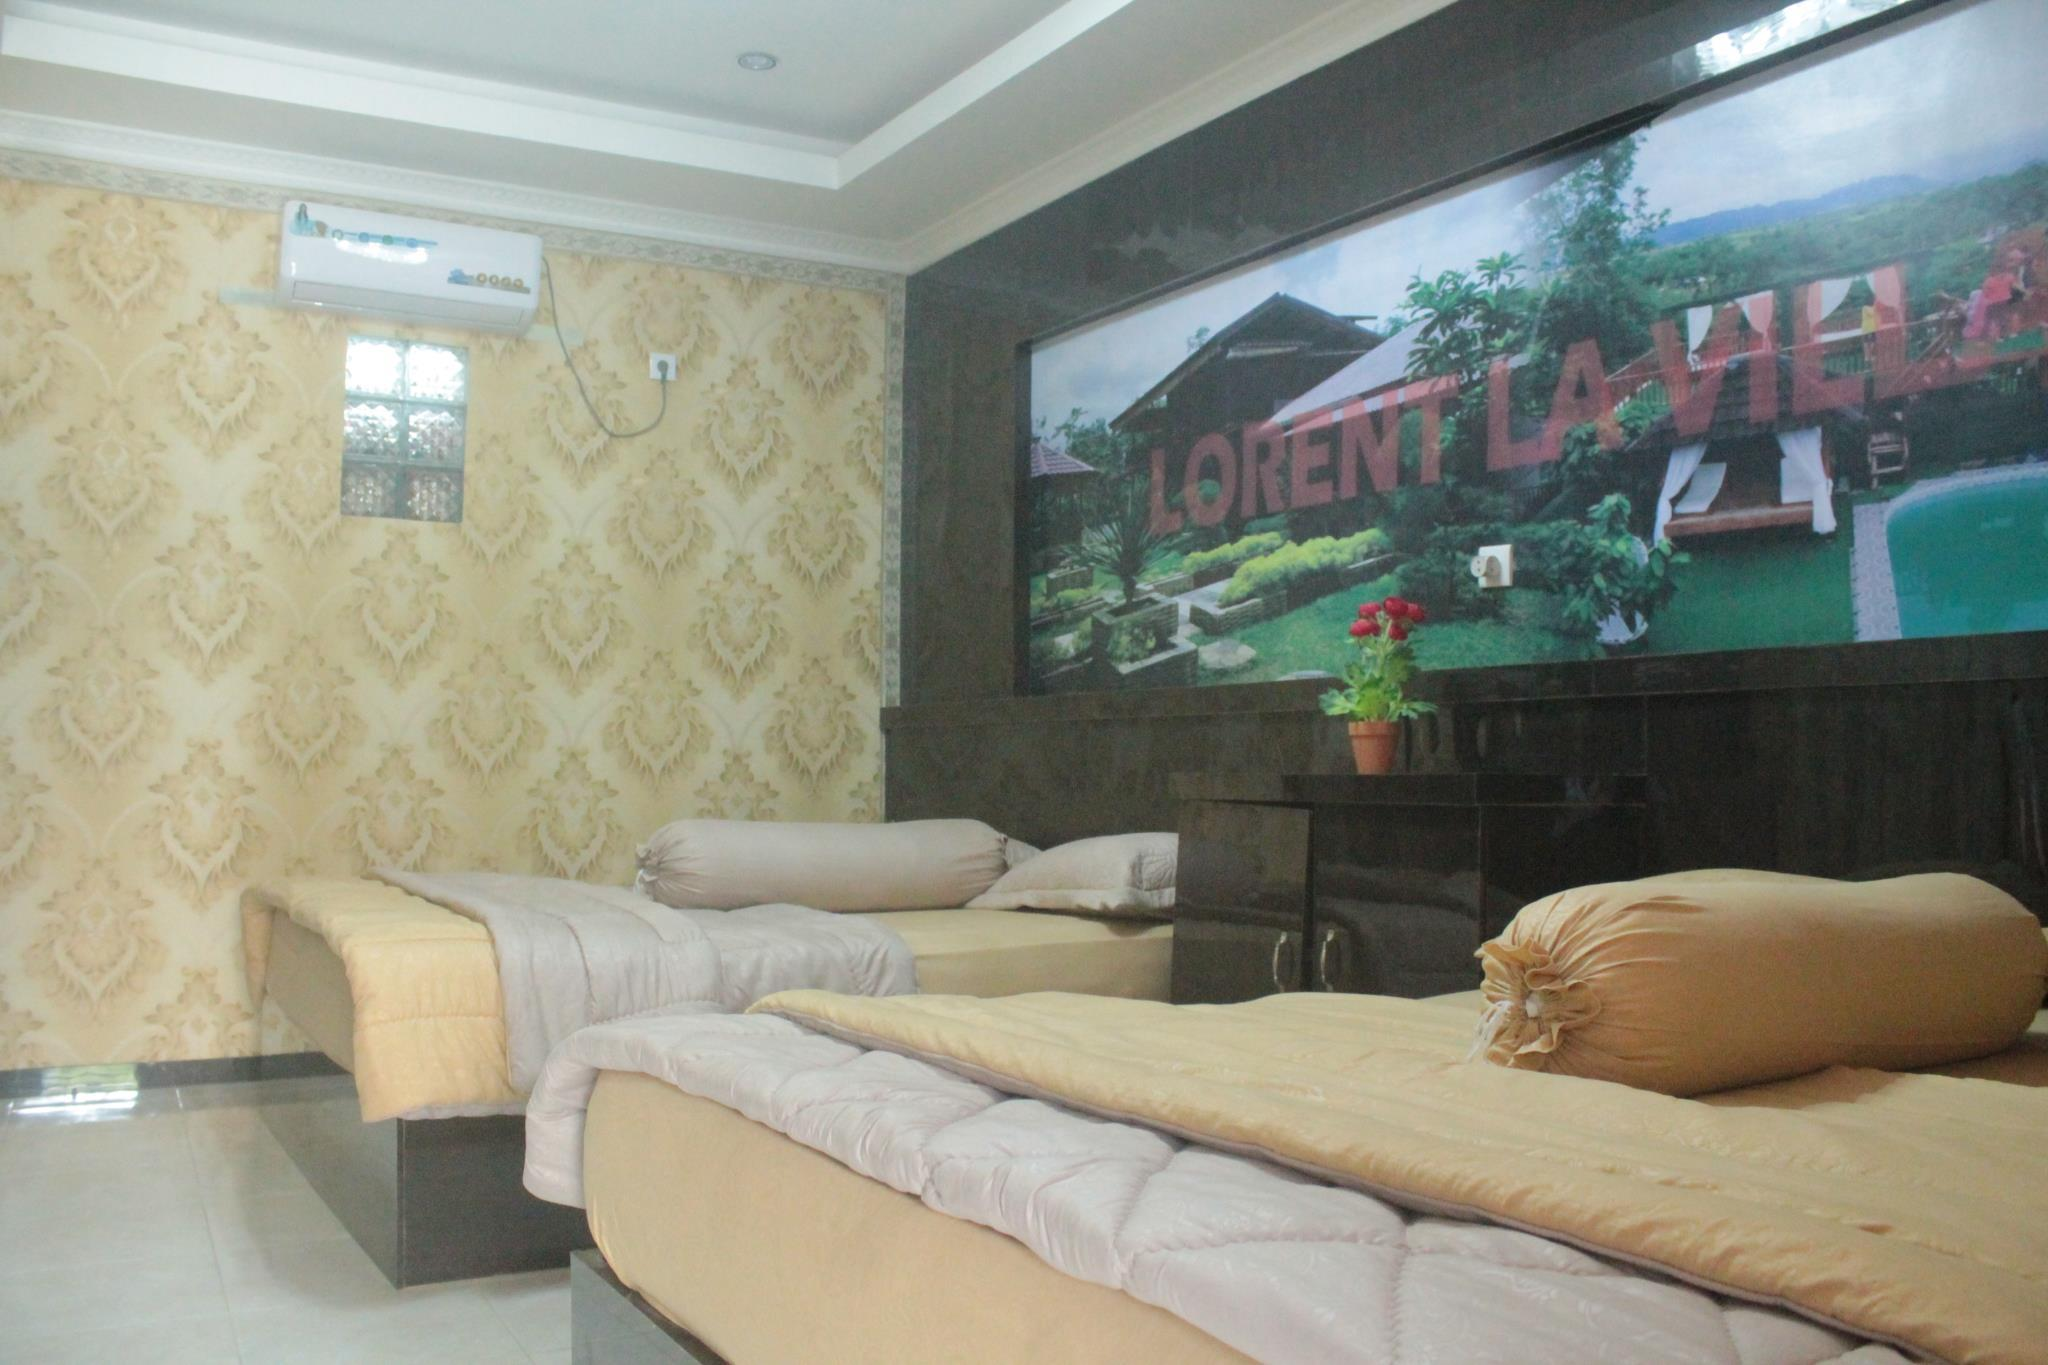 New Lorent Homestay